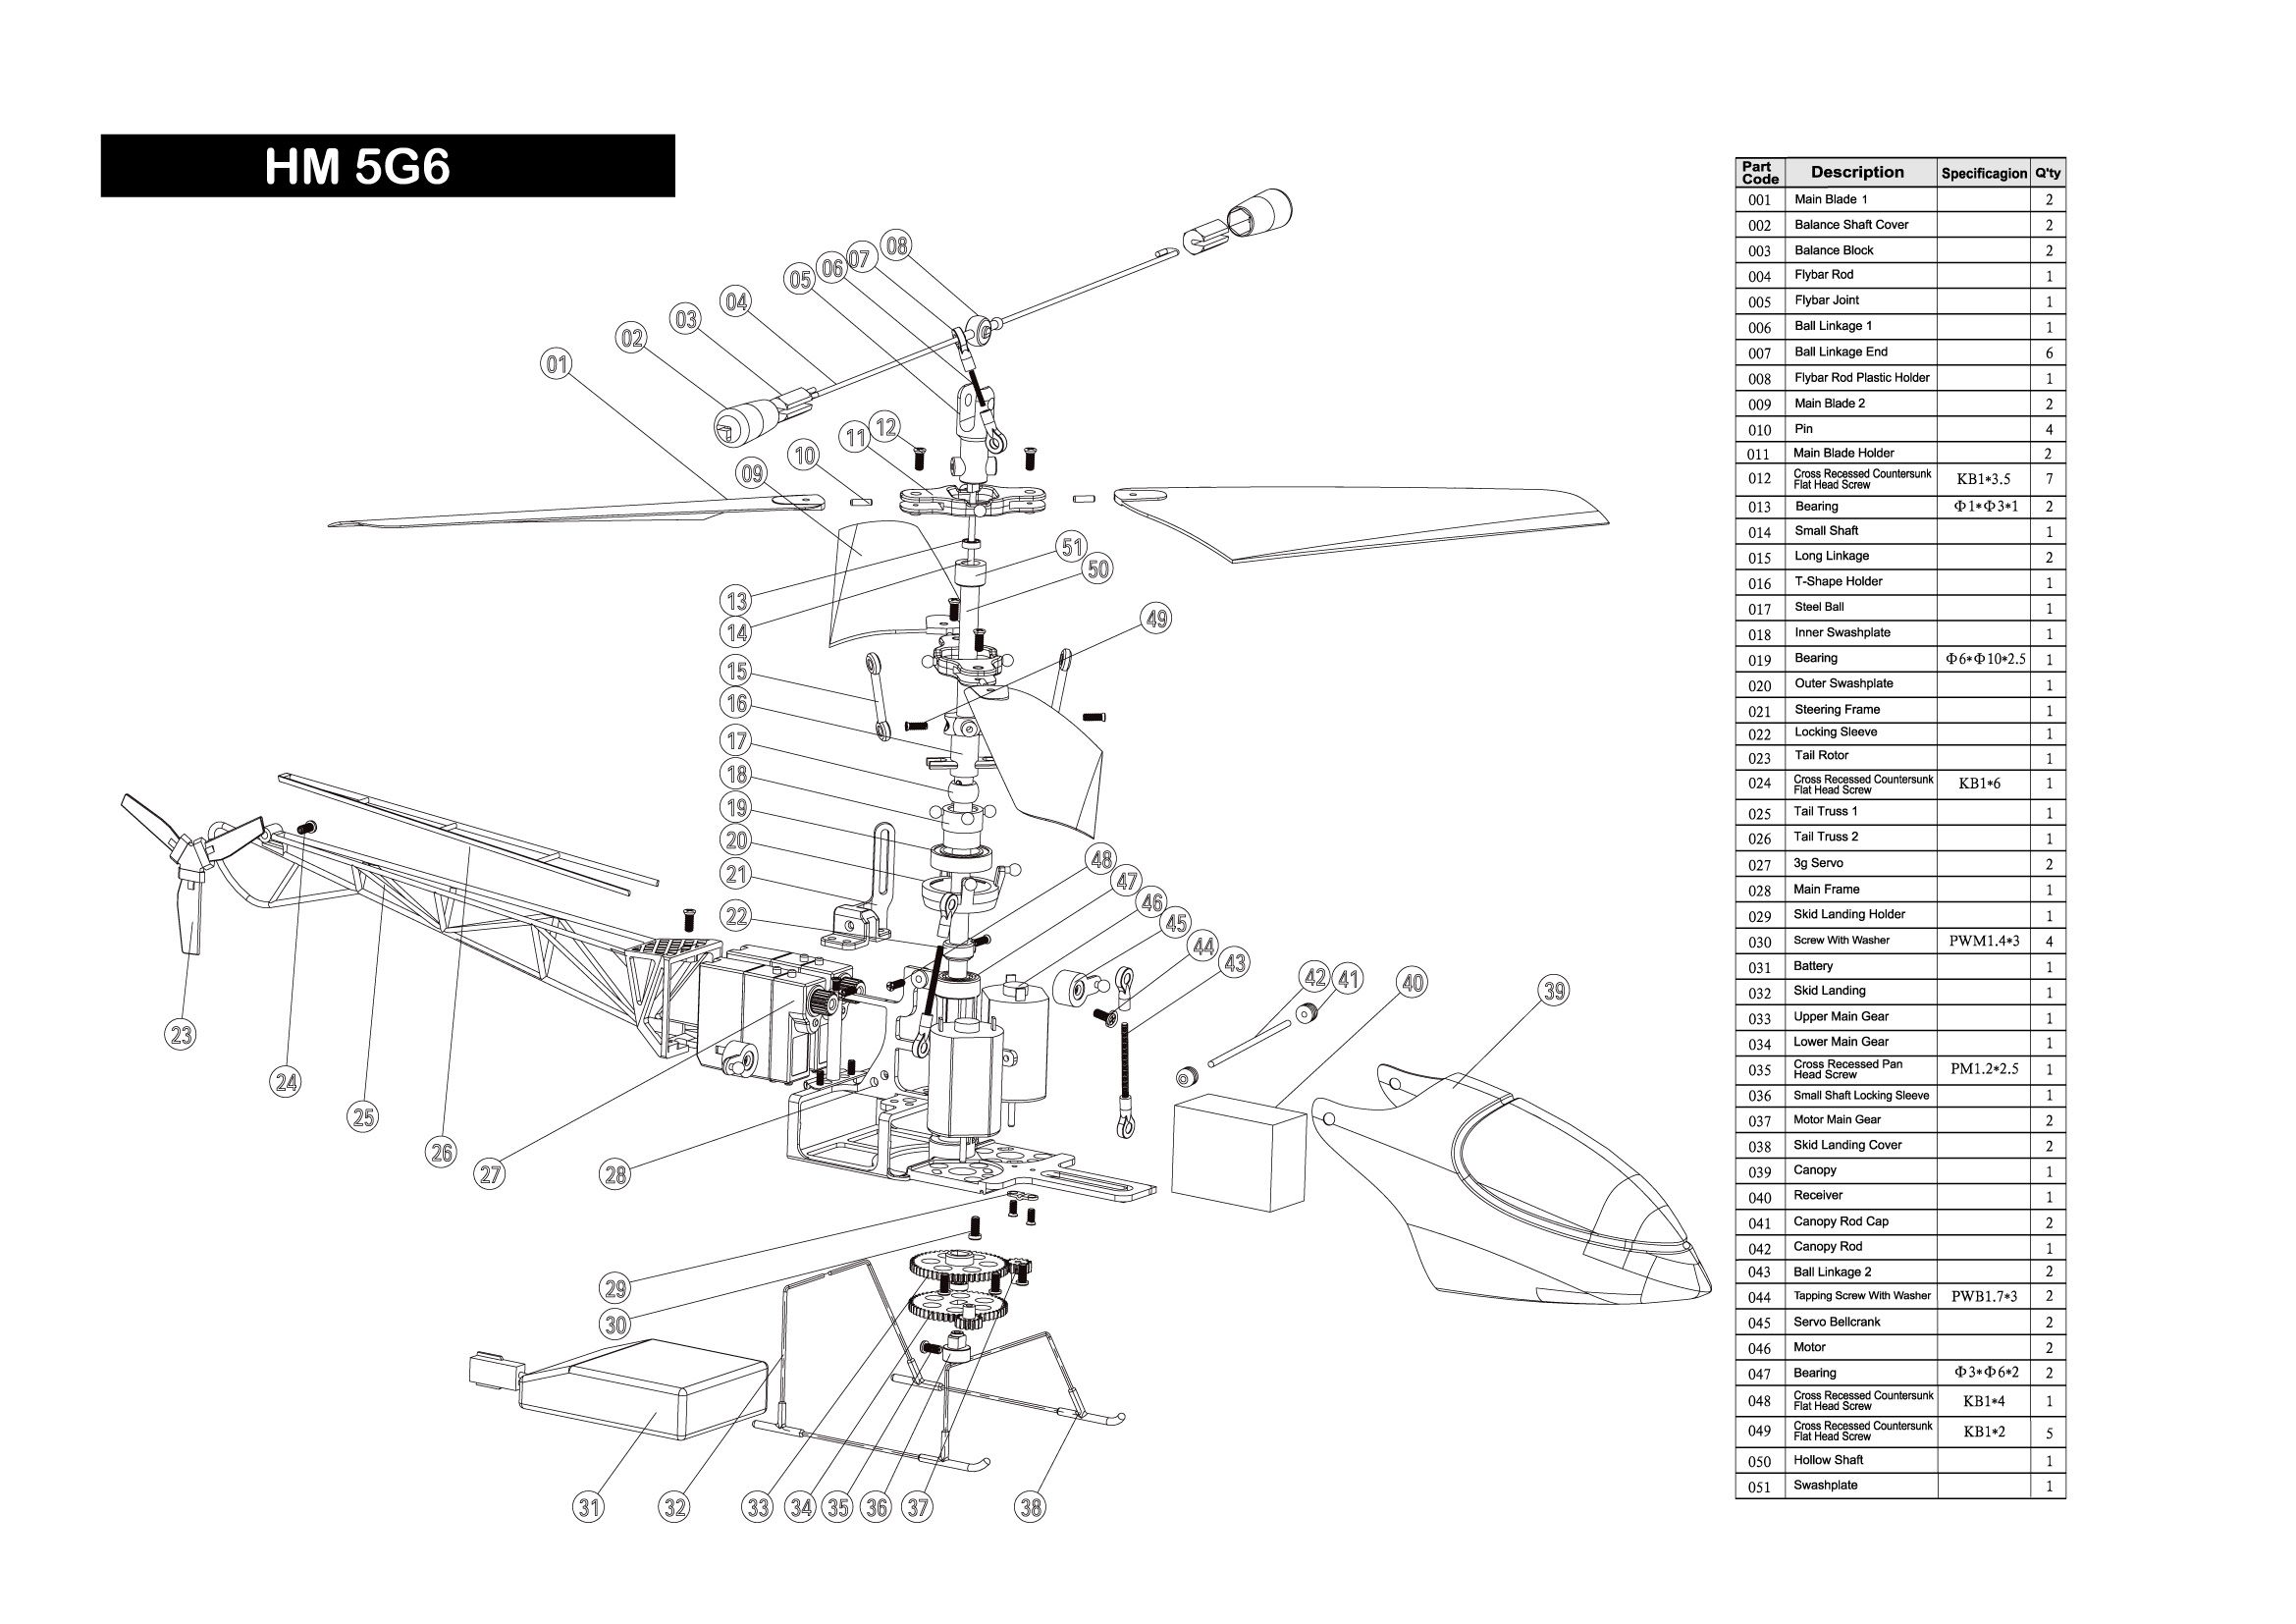 medium resolution of walkera hm 5g6 exploded diagram parts list quadcopters rc rc helicopter anatomy rc helicopter diagram